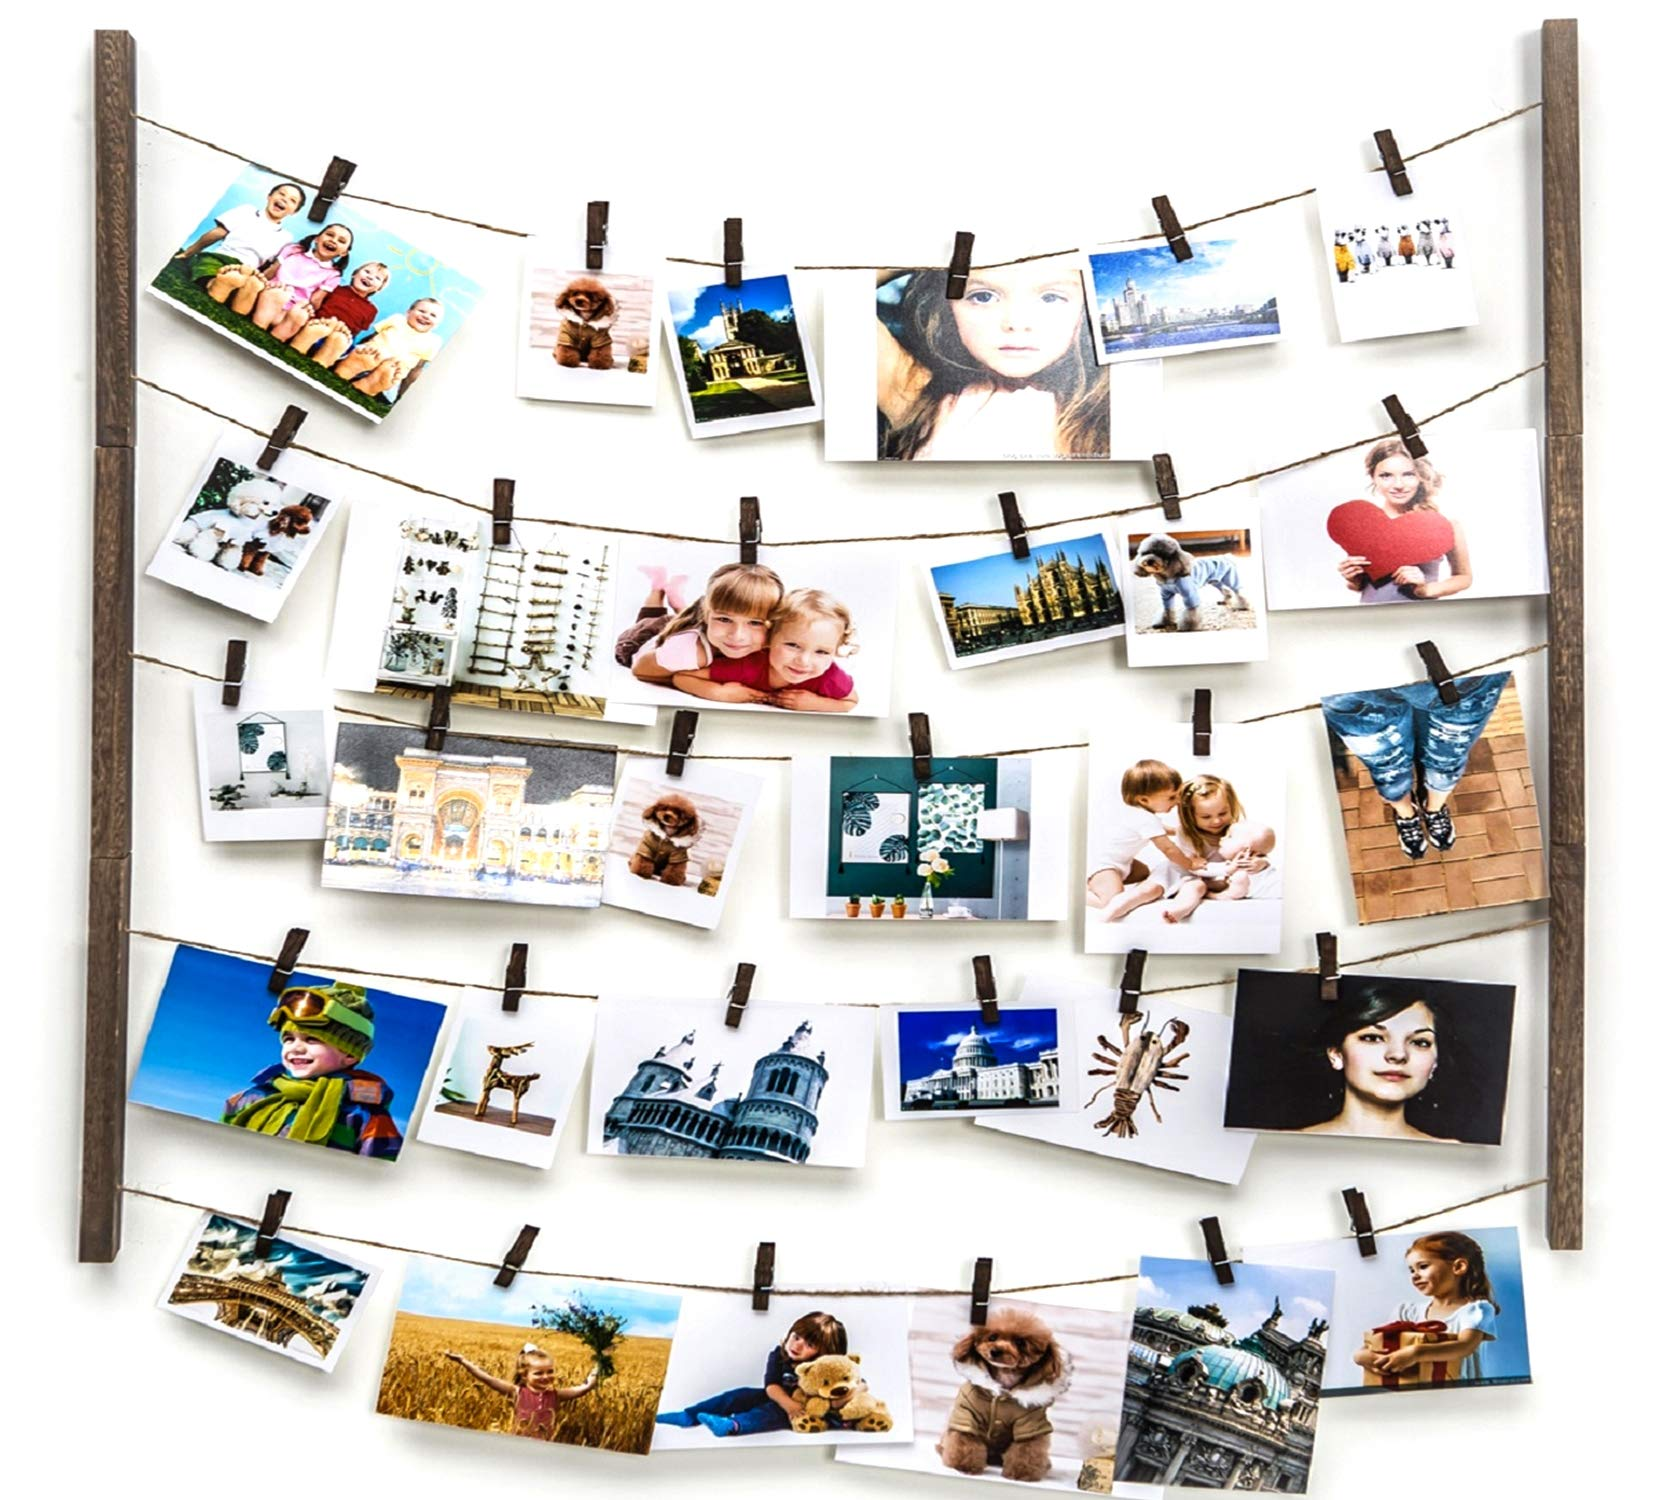 Y&ME Wood Picture Photo Frame for Hanging Wall Decor,Collage Artworks Prints Multi Pictures Organizer with 30 Clips & Adjustable Twines,DIY Wood Hanging Display Frames, Carbonized Black 26 X 29 inch by Y&ME